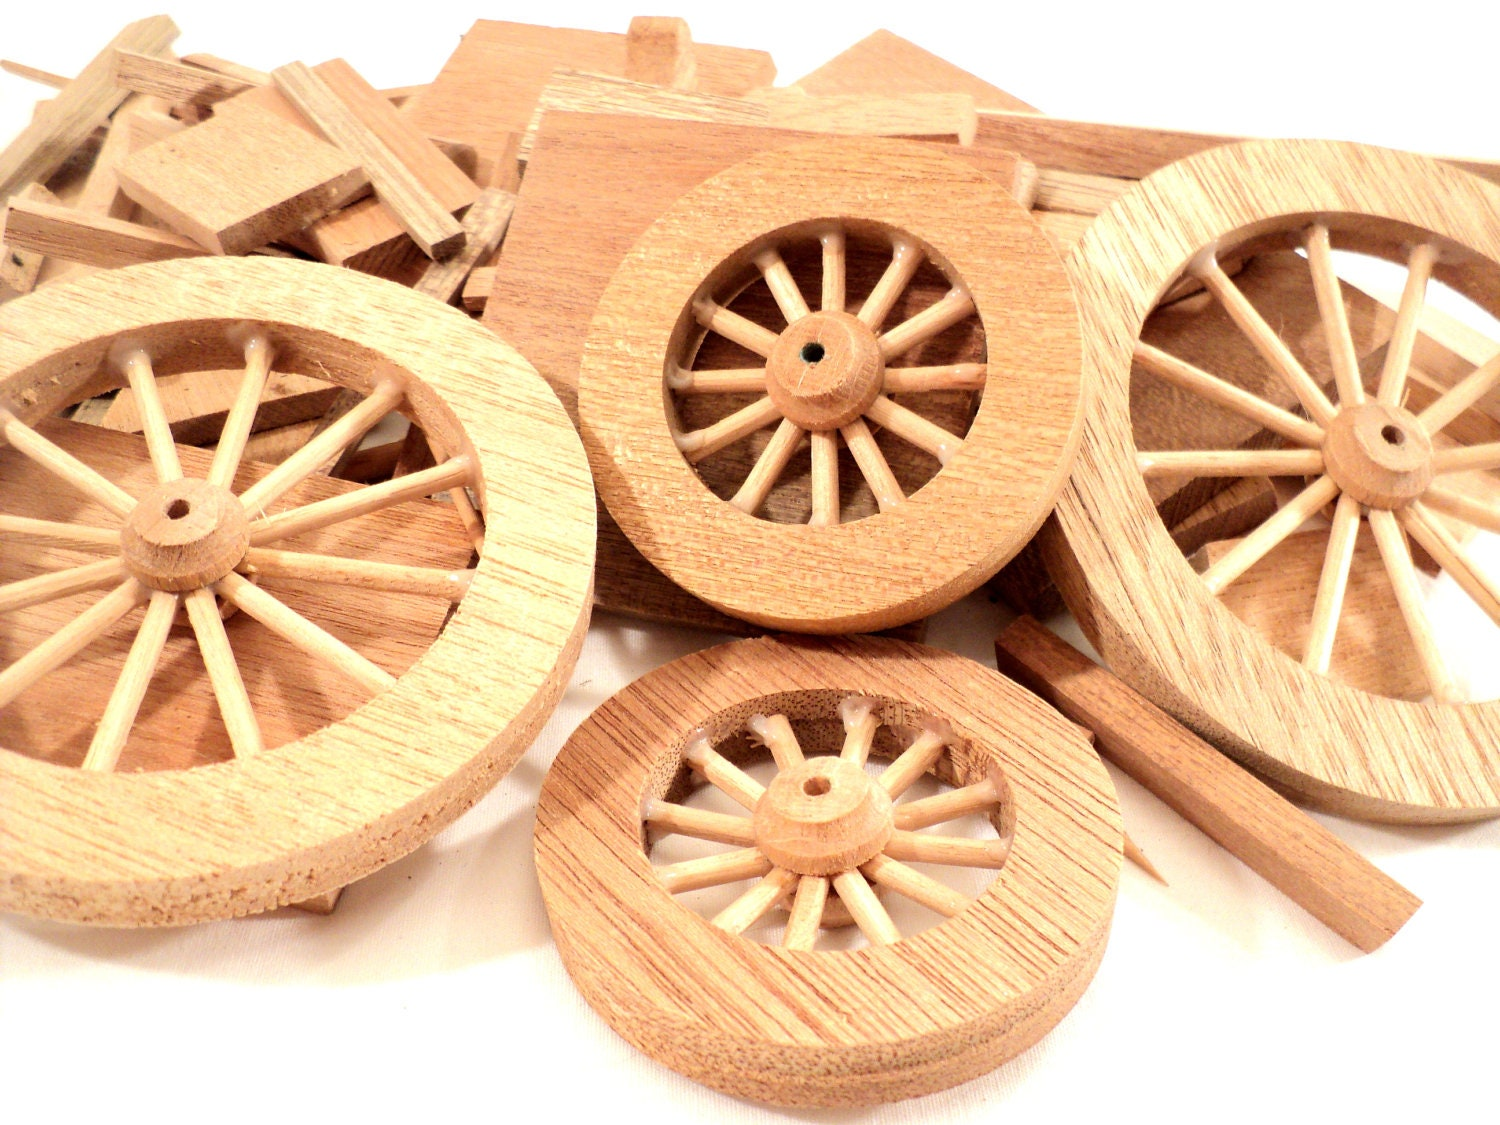 Wooden Wagon Wheels ~ Toy wooden wagon parts wheels and pieces dollhouse